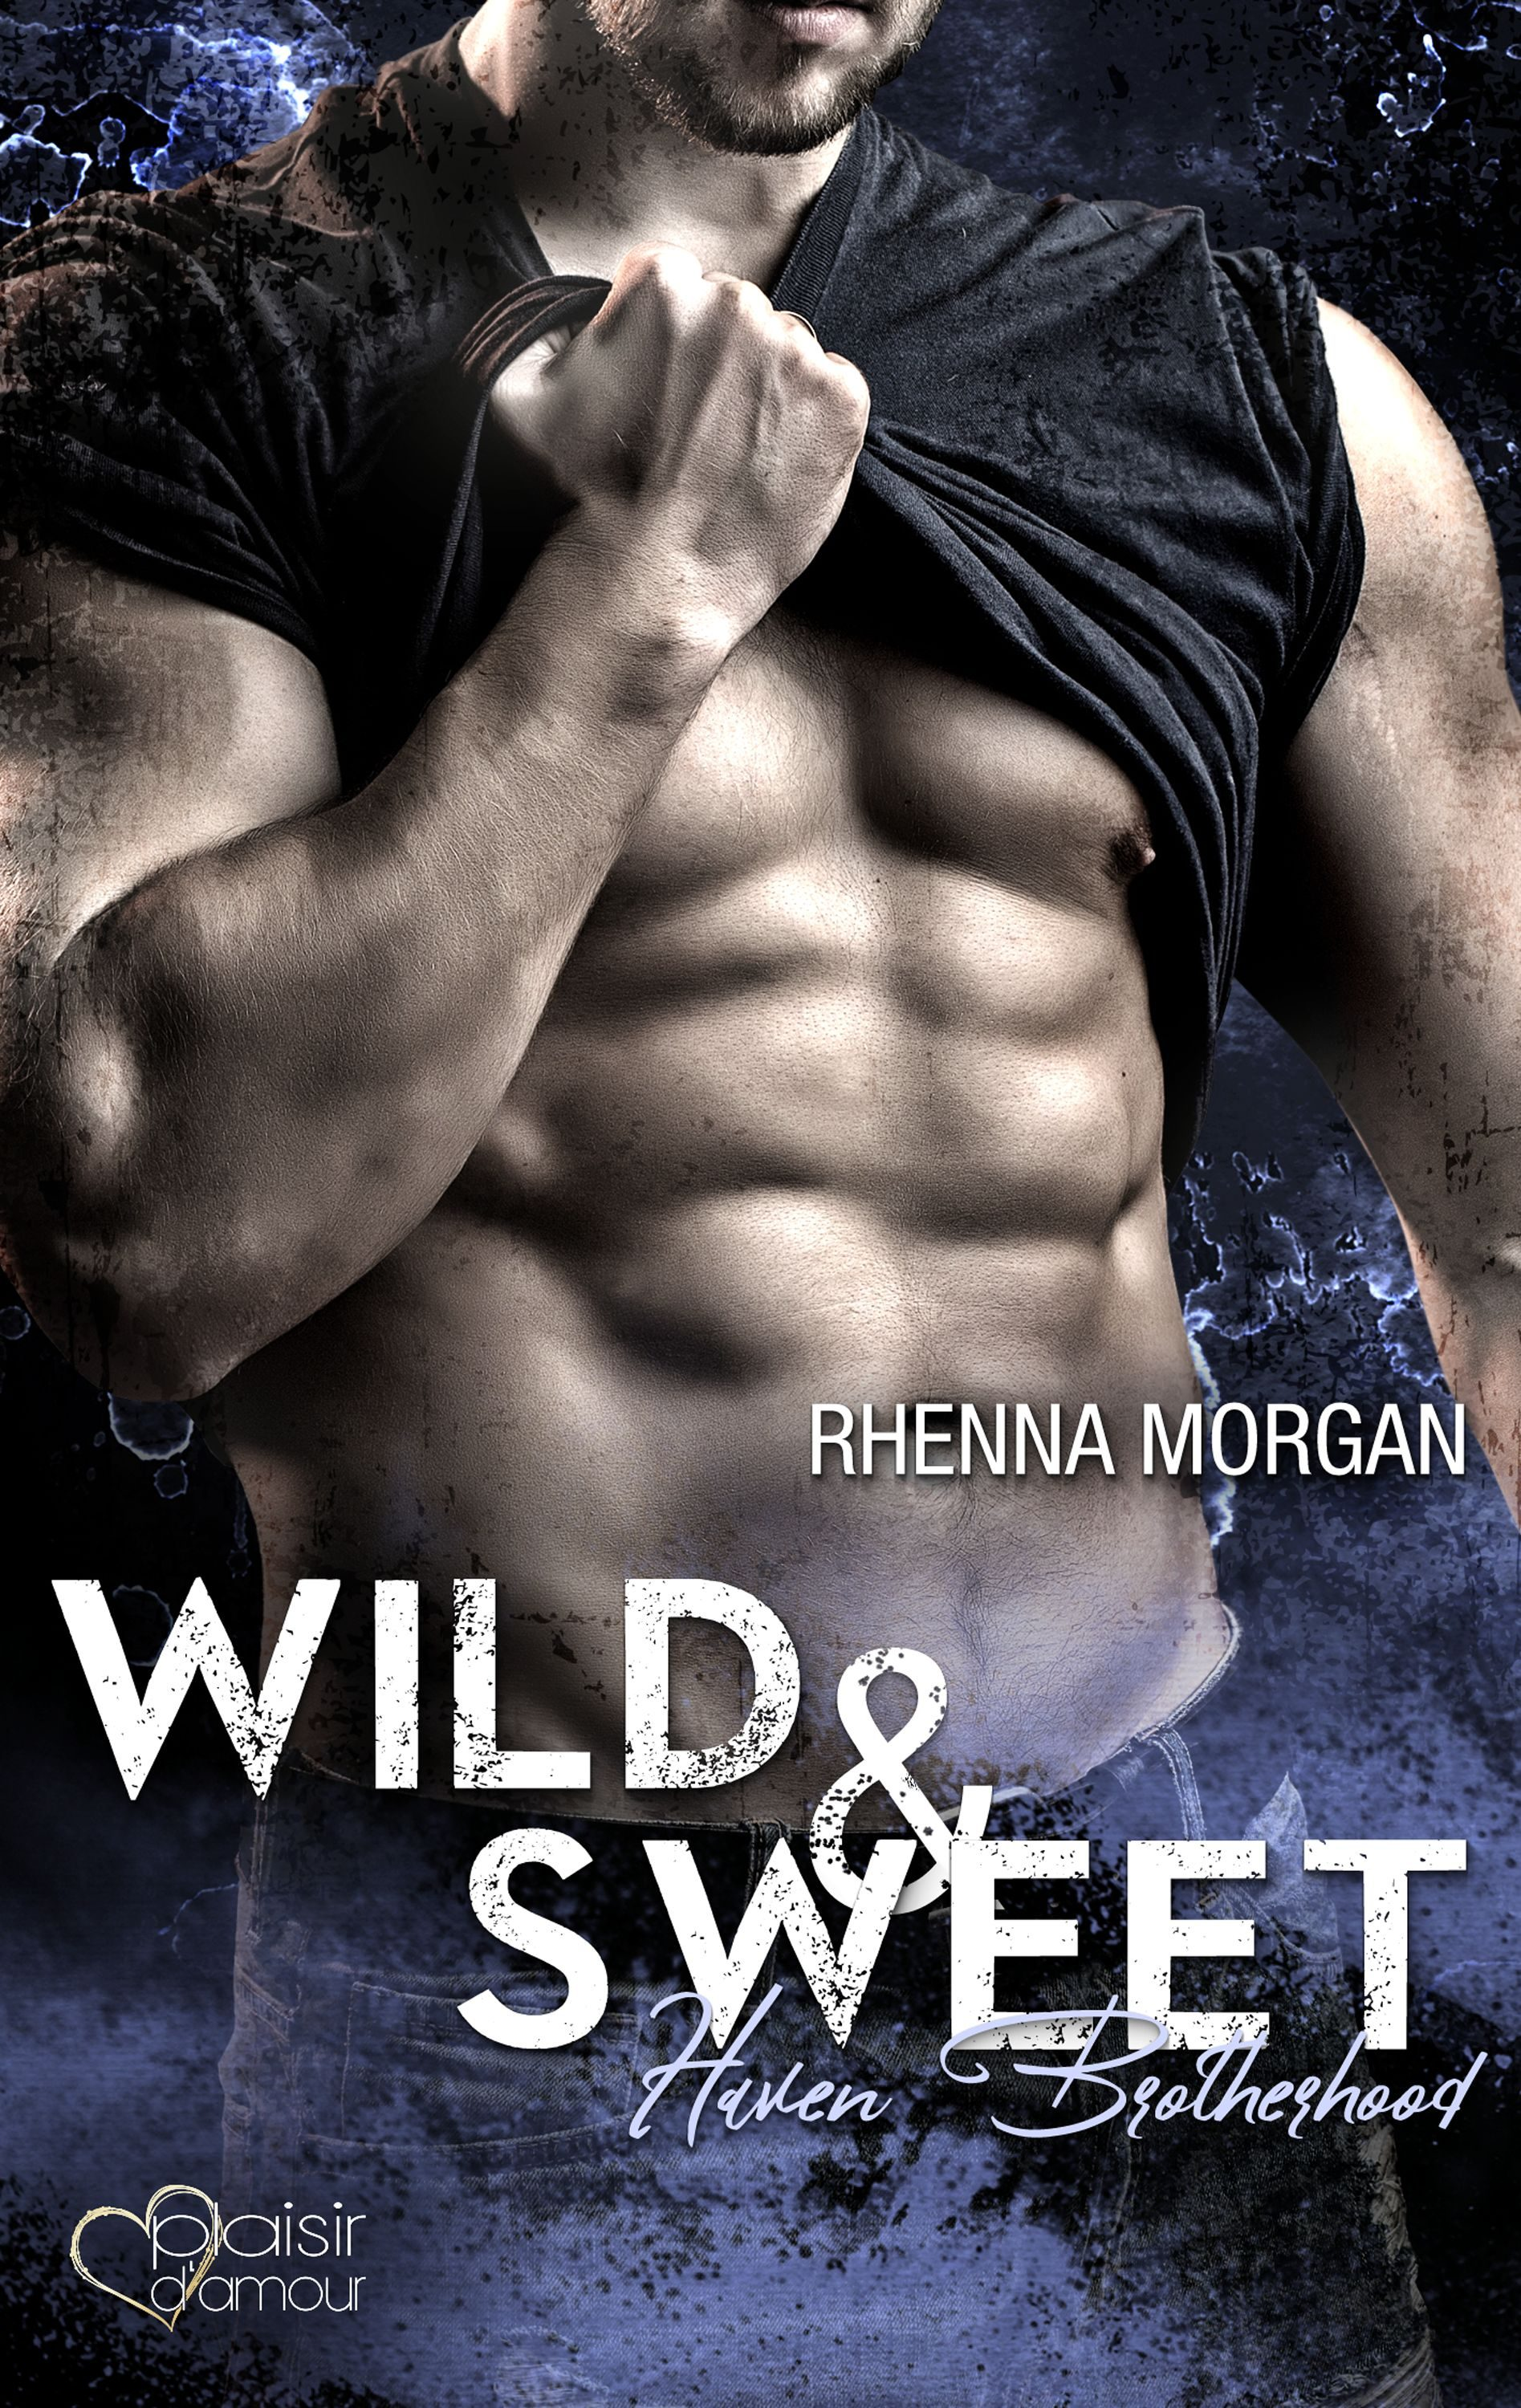 Rebeca Wild Libros Pdf Haven Brotherhood Wild Sweet Ebook Rhenna Morgan Descargar Libro Pdf O Epub 9783864953279